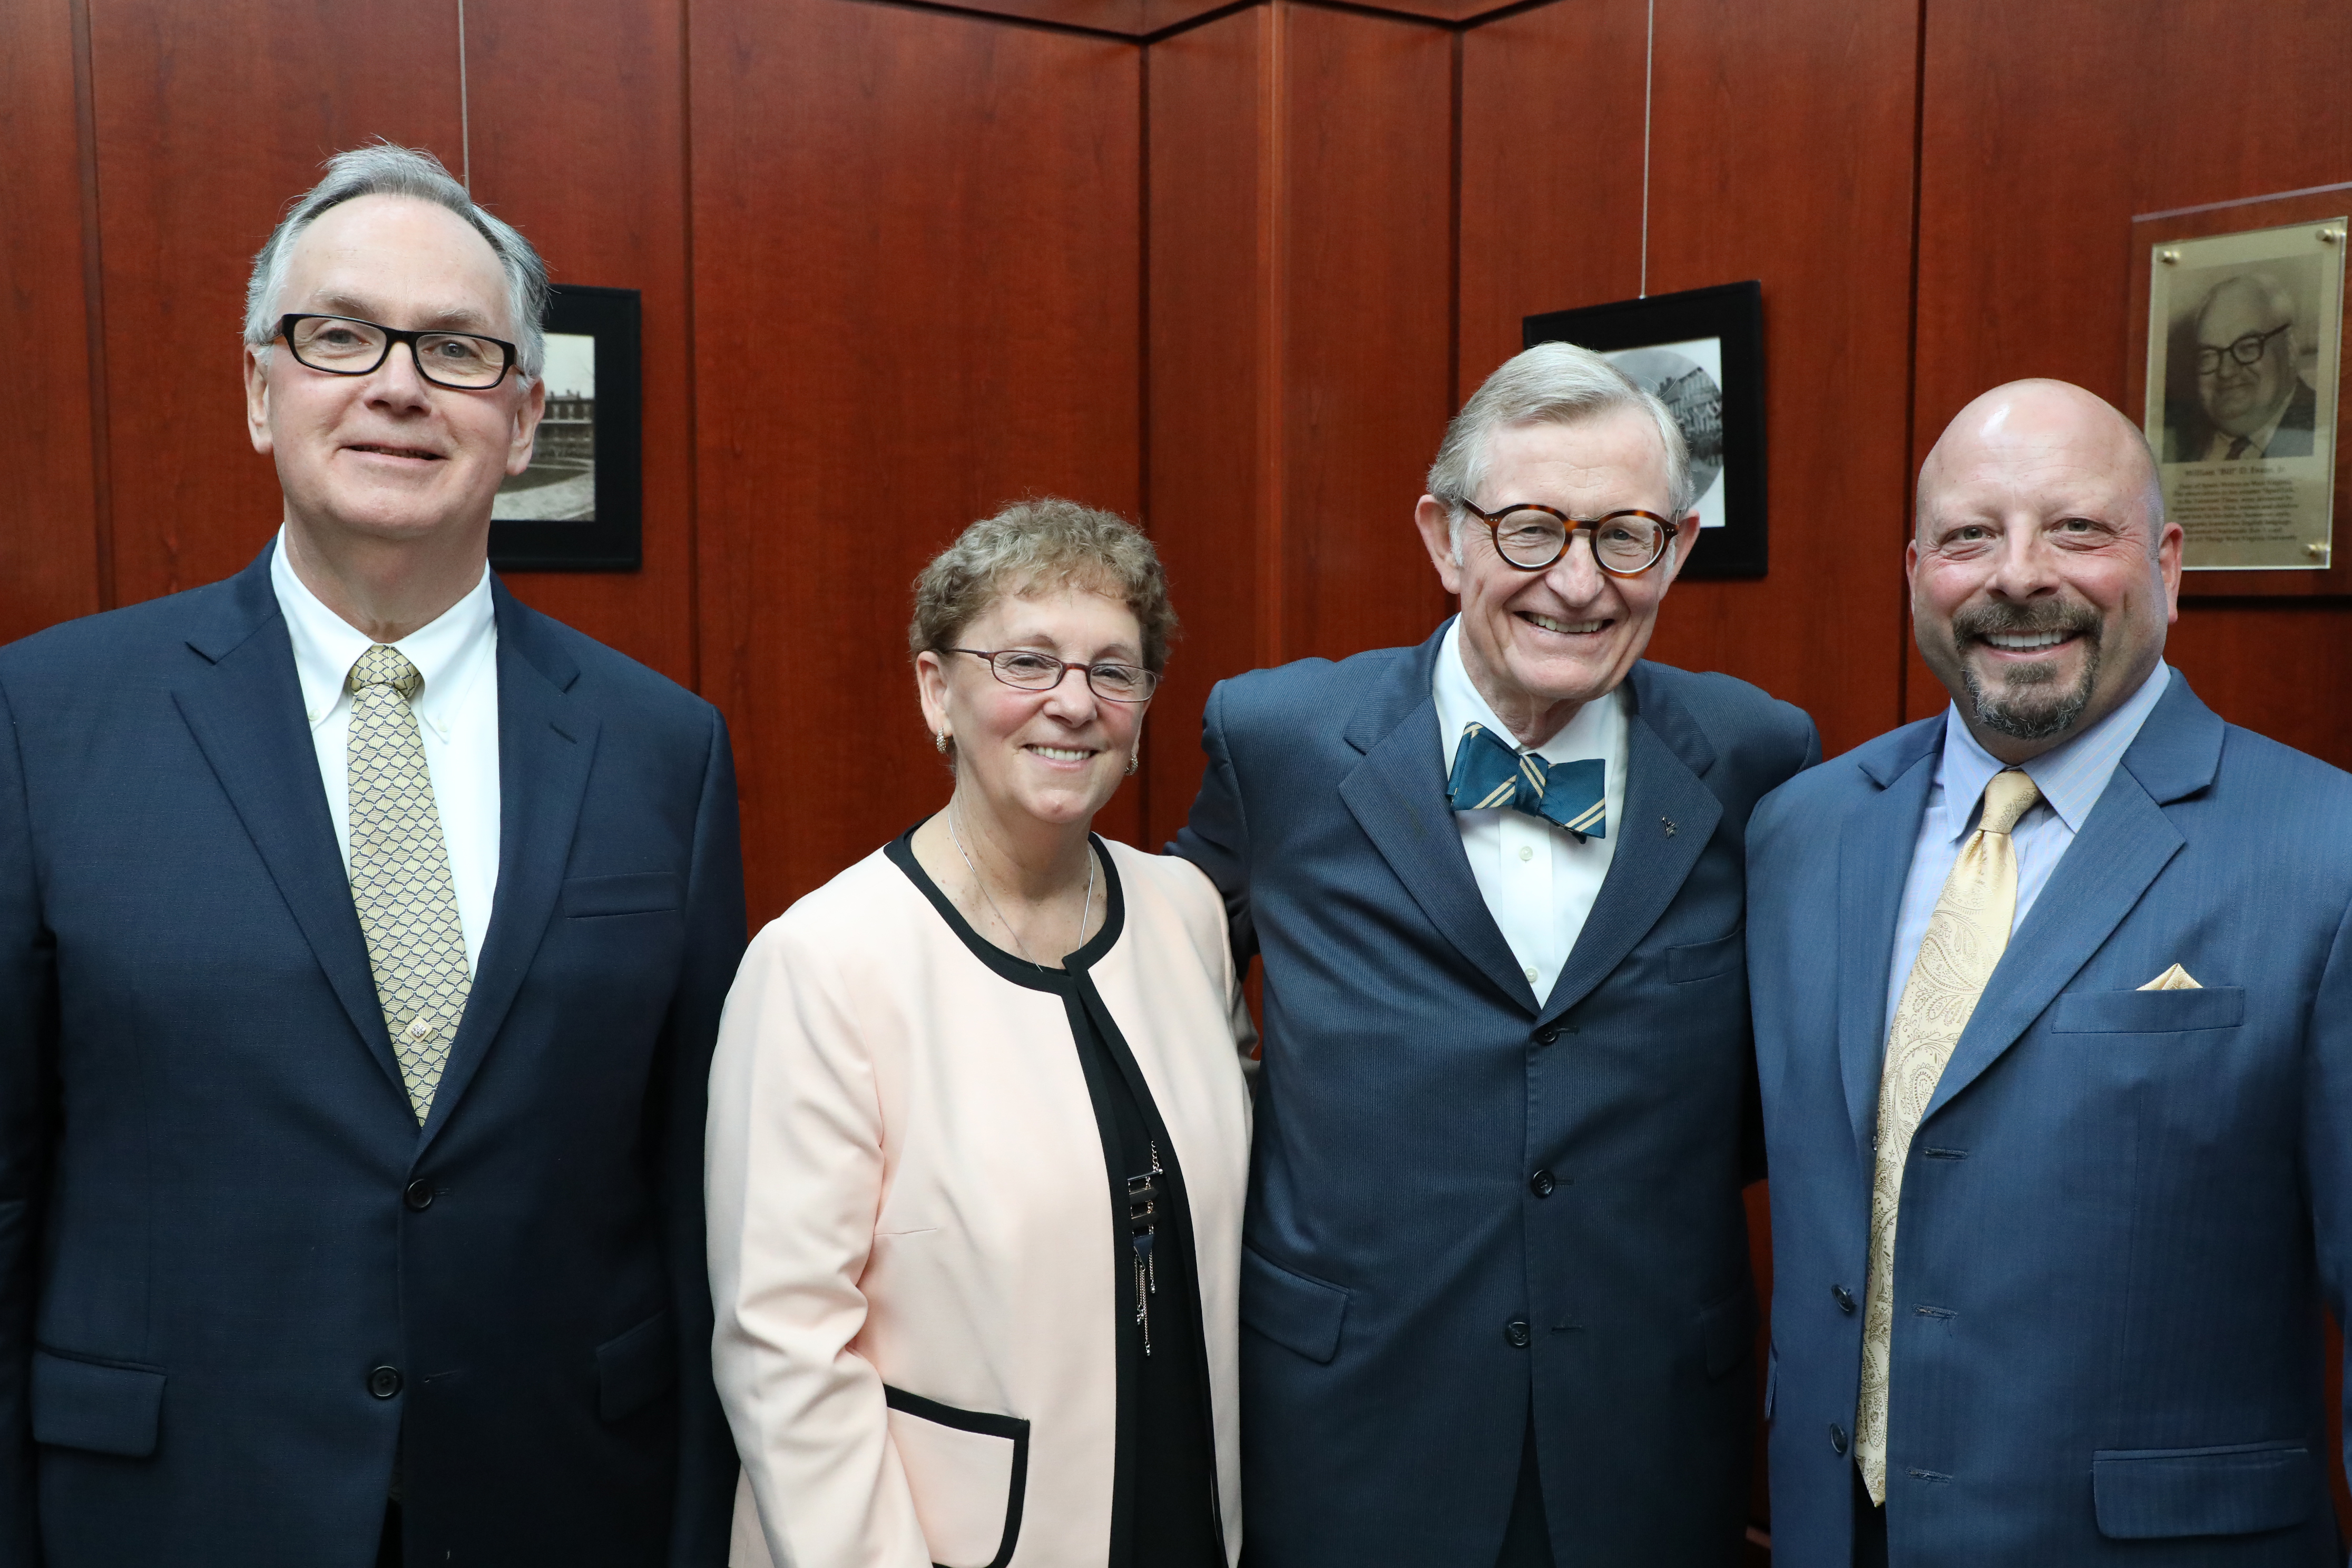 WVU President Dr. E. Gordon Gee with this year's Distinguished Alumni: Dr. George Fahey, Dr. Linda Carson, Bill Bayless. Not pictured, Katherine G. Johnson (Photo: Business Wire)